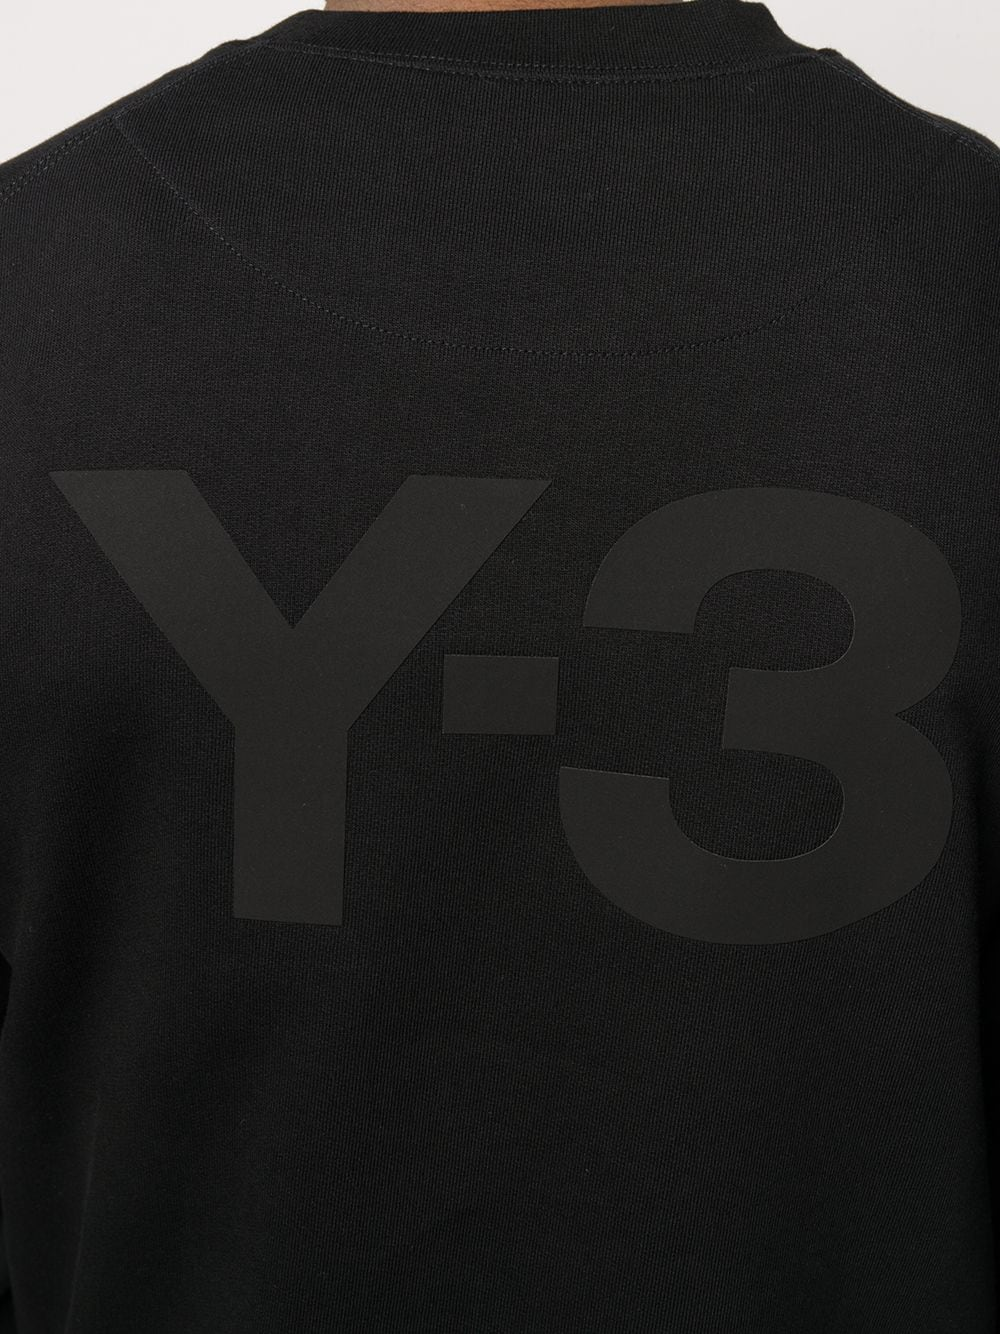 Picture of Adidas Y-3 | Relaxed-Fit Logo Sweatshirt